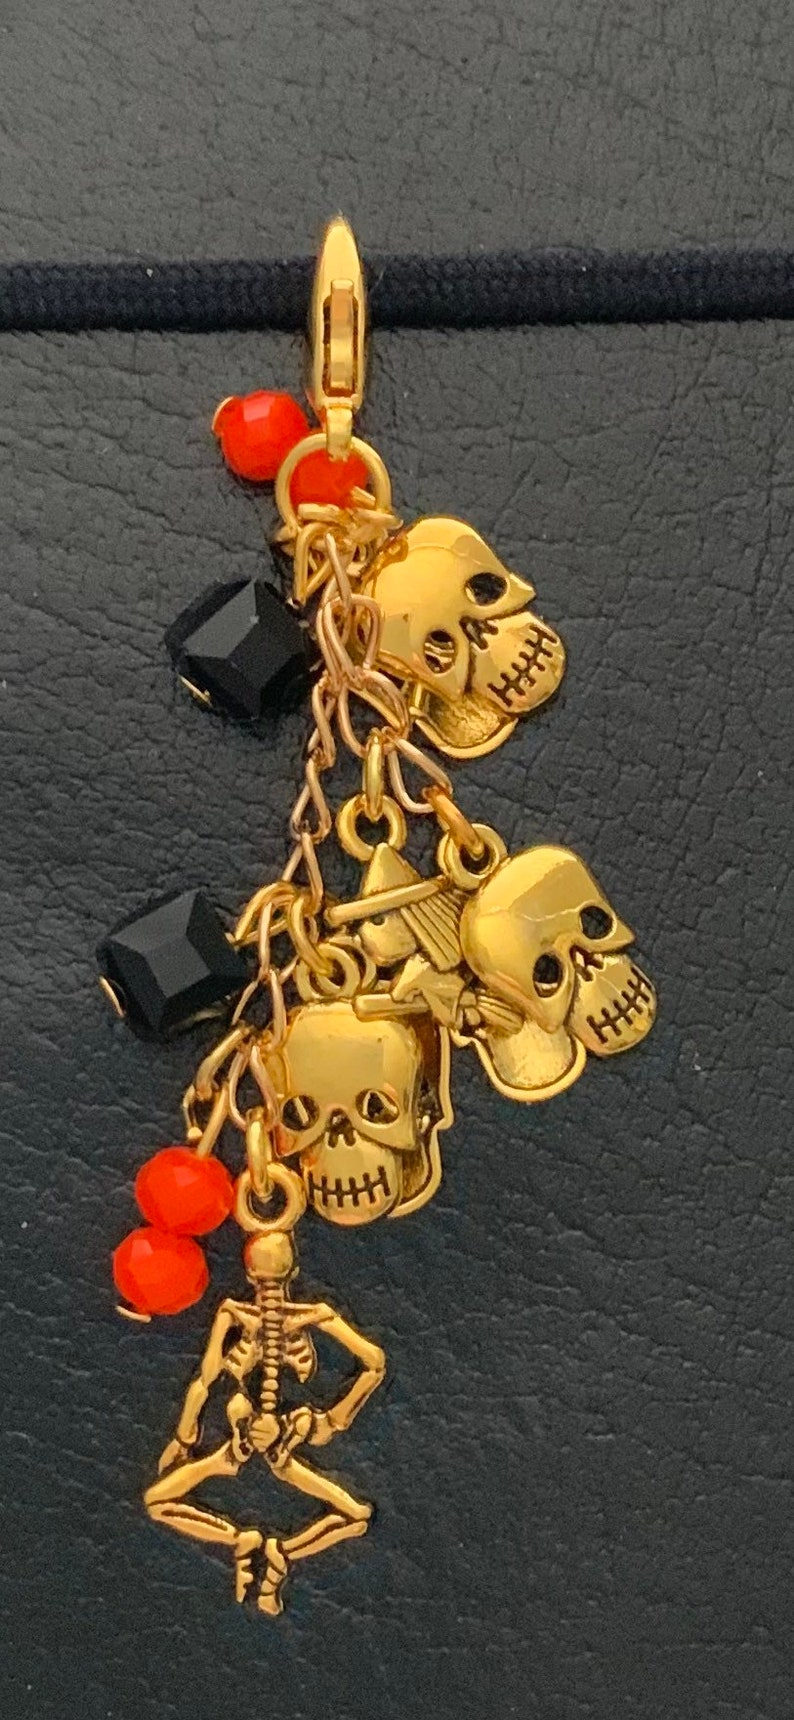 Skull and Witch  Planner Charm Journal Charm and Bag Charm TN charm APC2006 Gold Halloween Skeleton